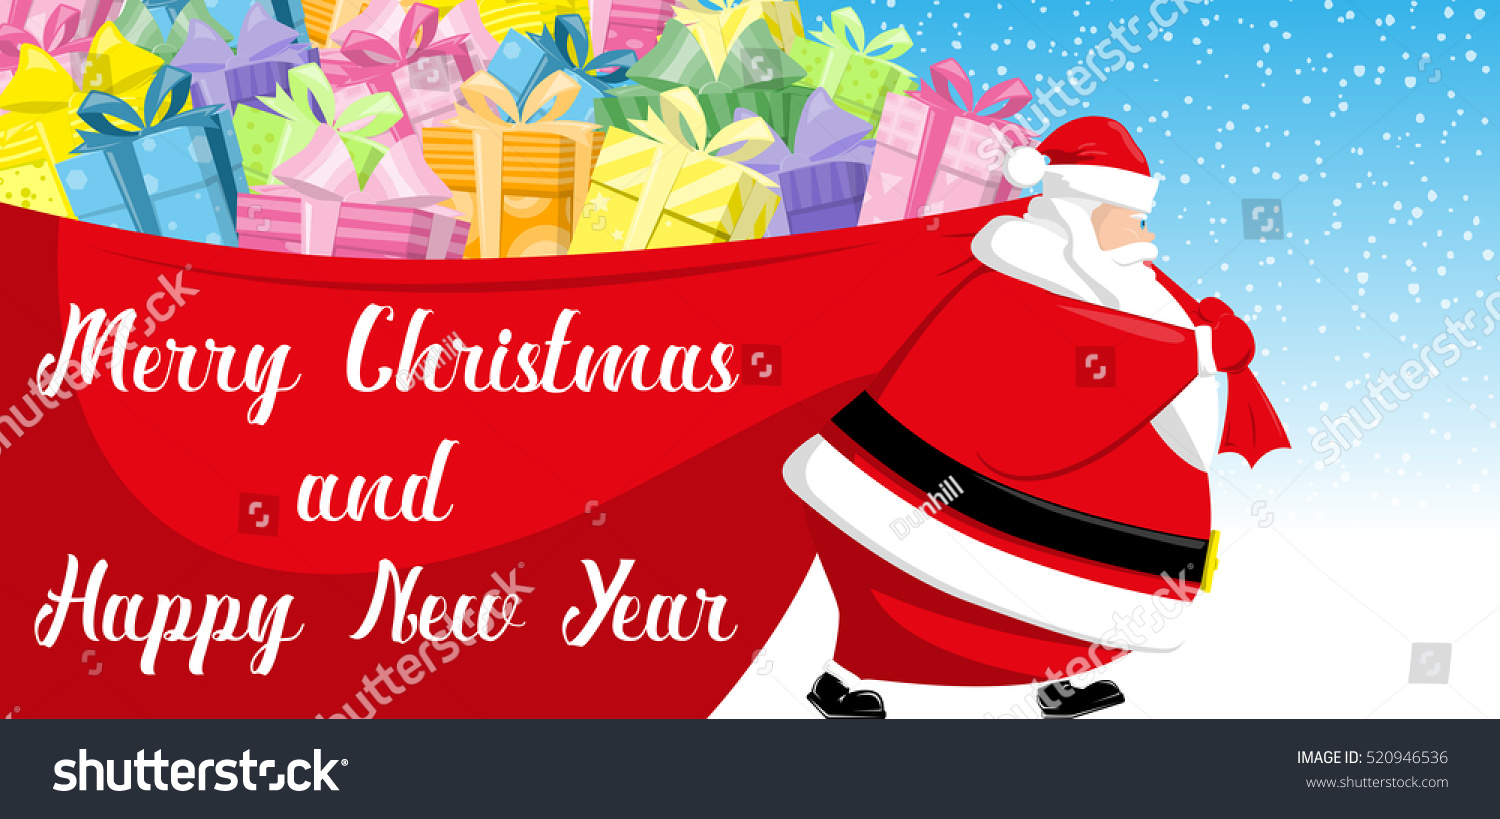 merry christmas and happy new year banner cute santa claus goes with big red bag